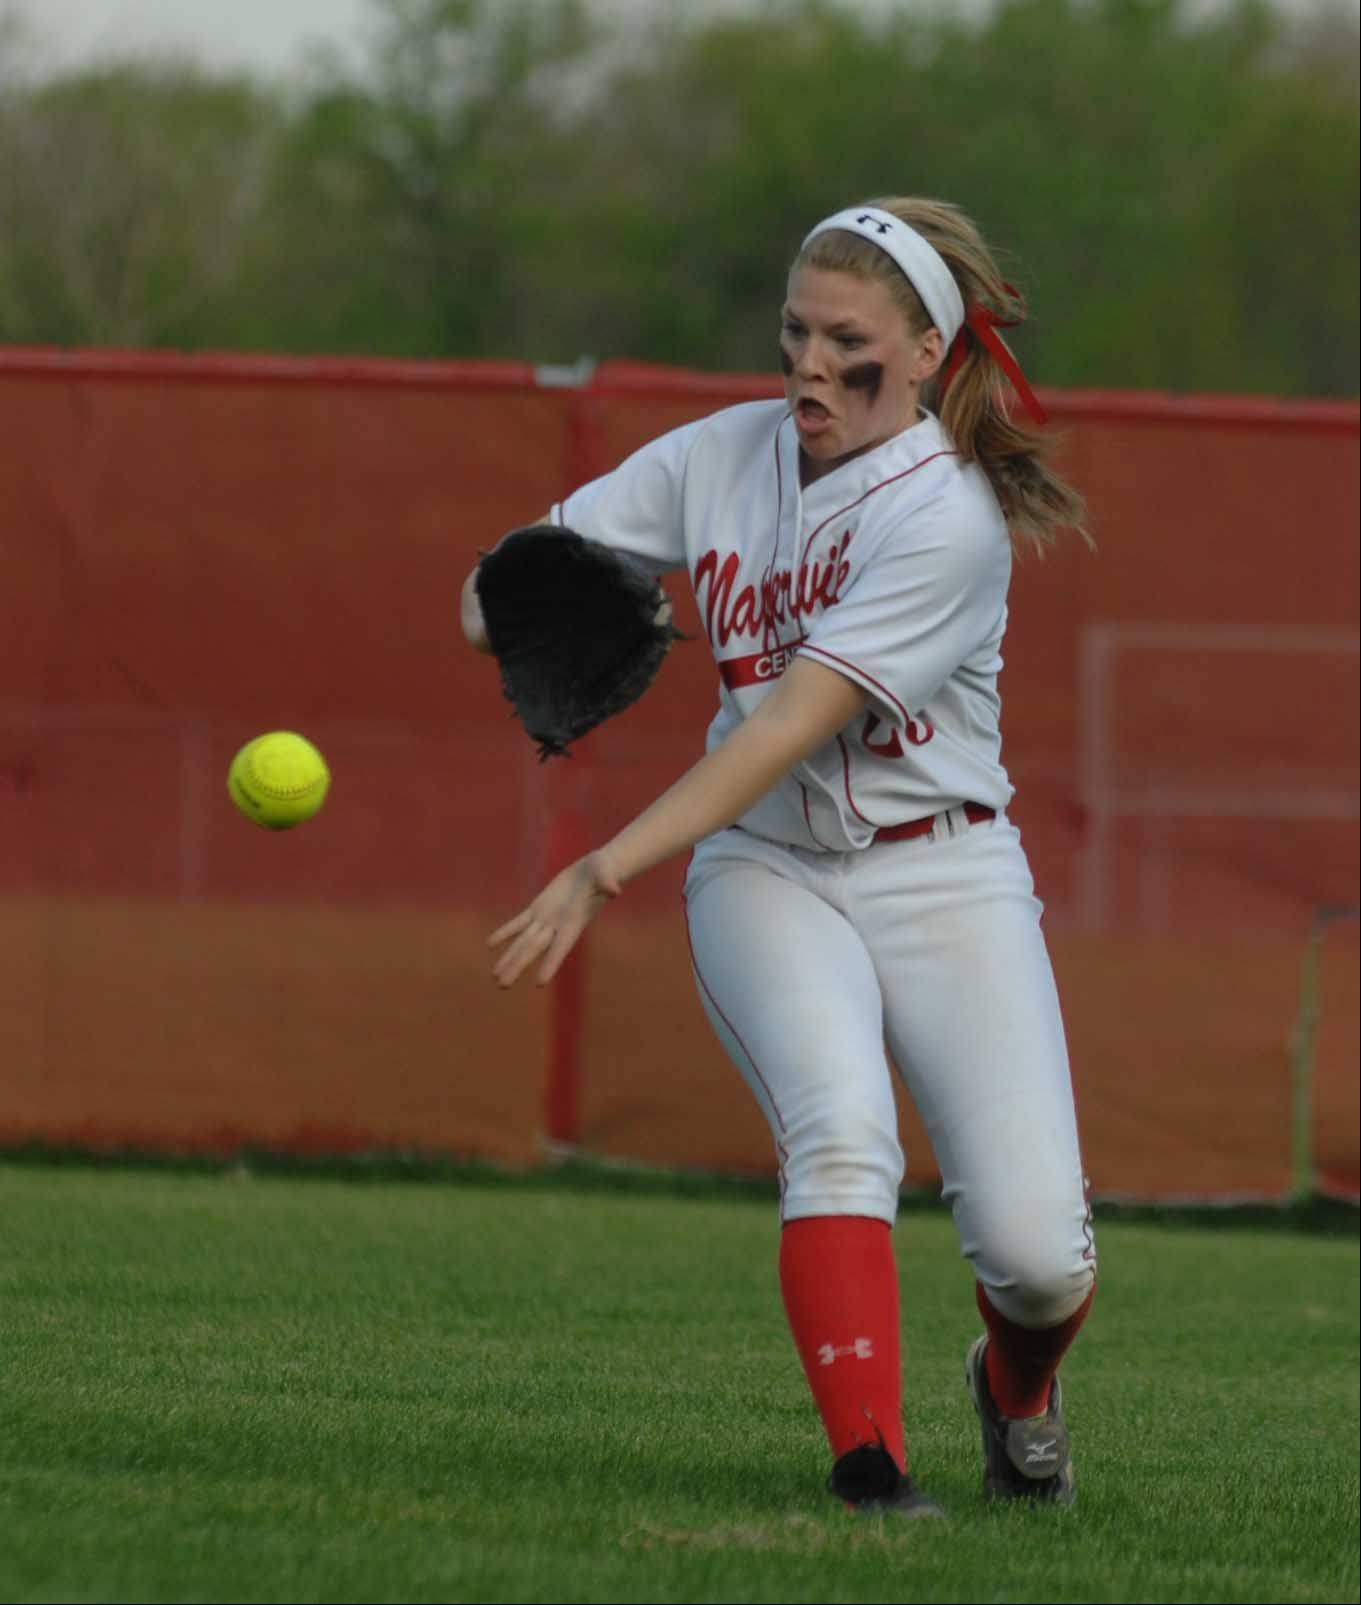 Naperville Central's Maddi Doane took part in Wednesday's game against Glenbard North in Naperville.